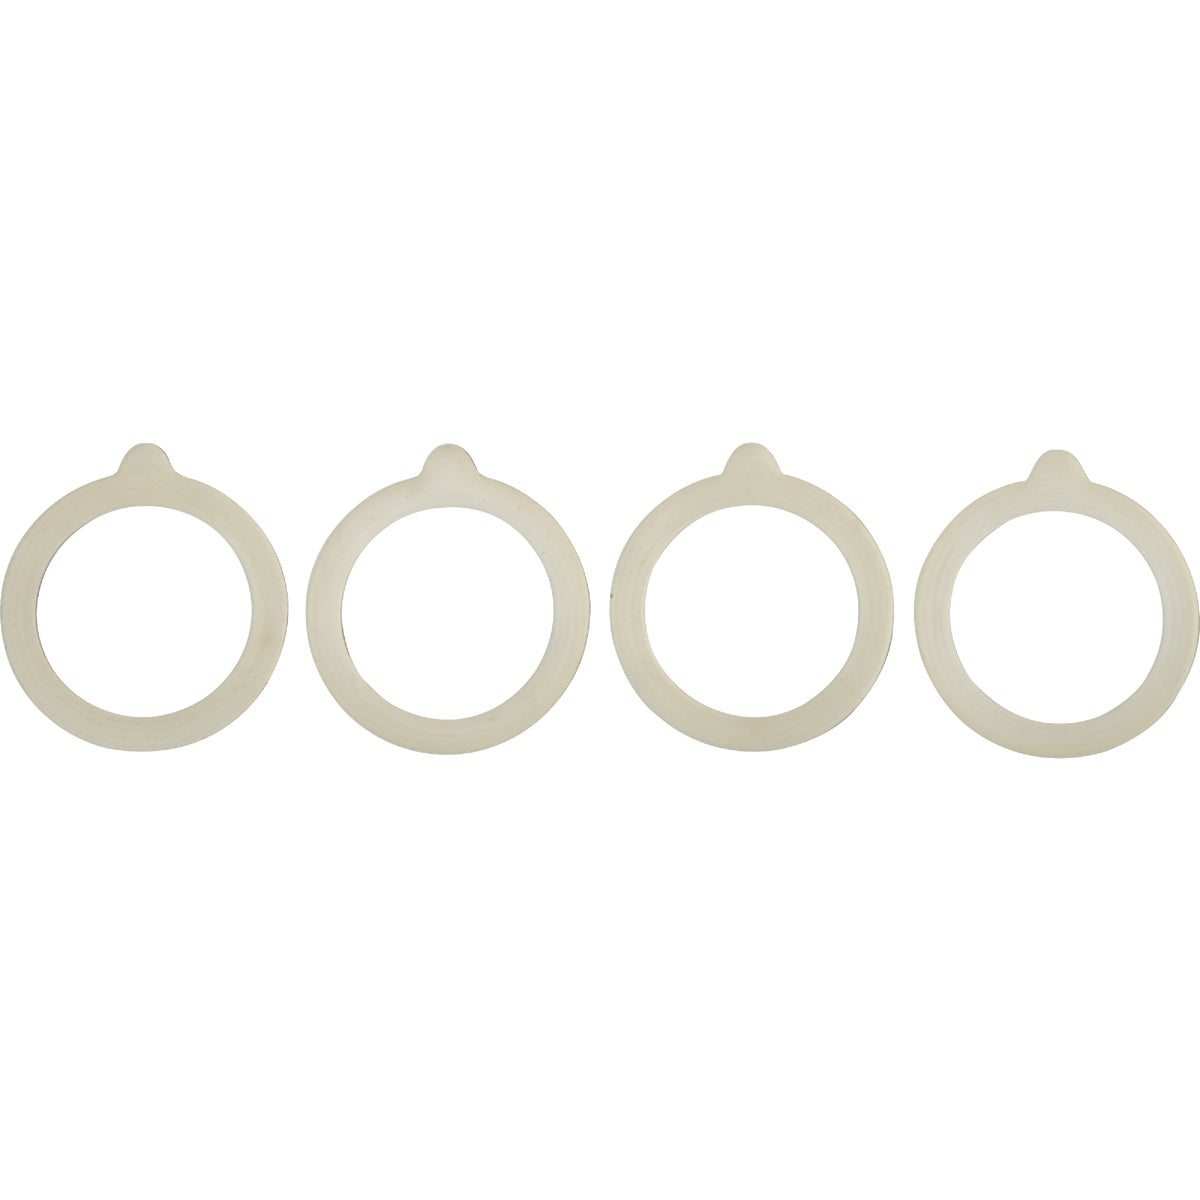 CANNING JAR GASKET RING - 9924 by Harold Import